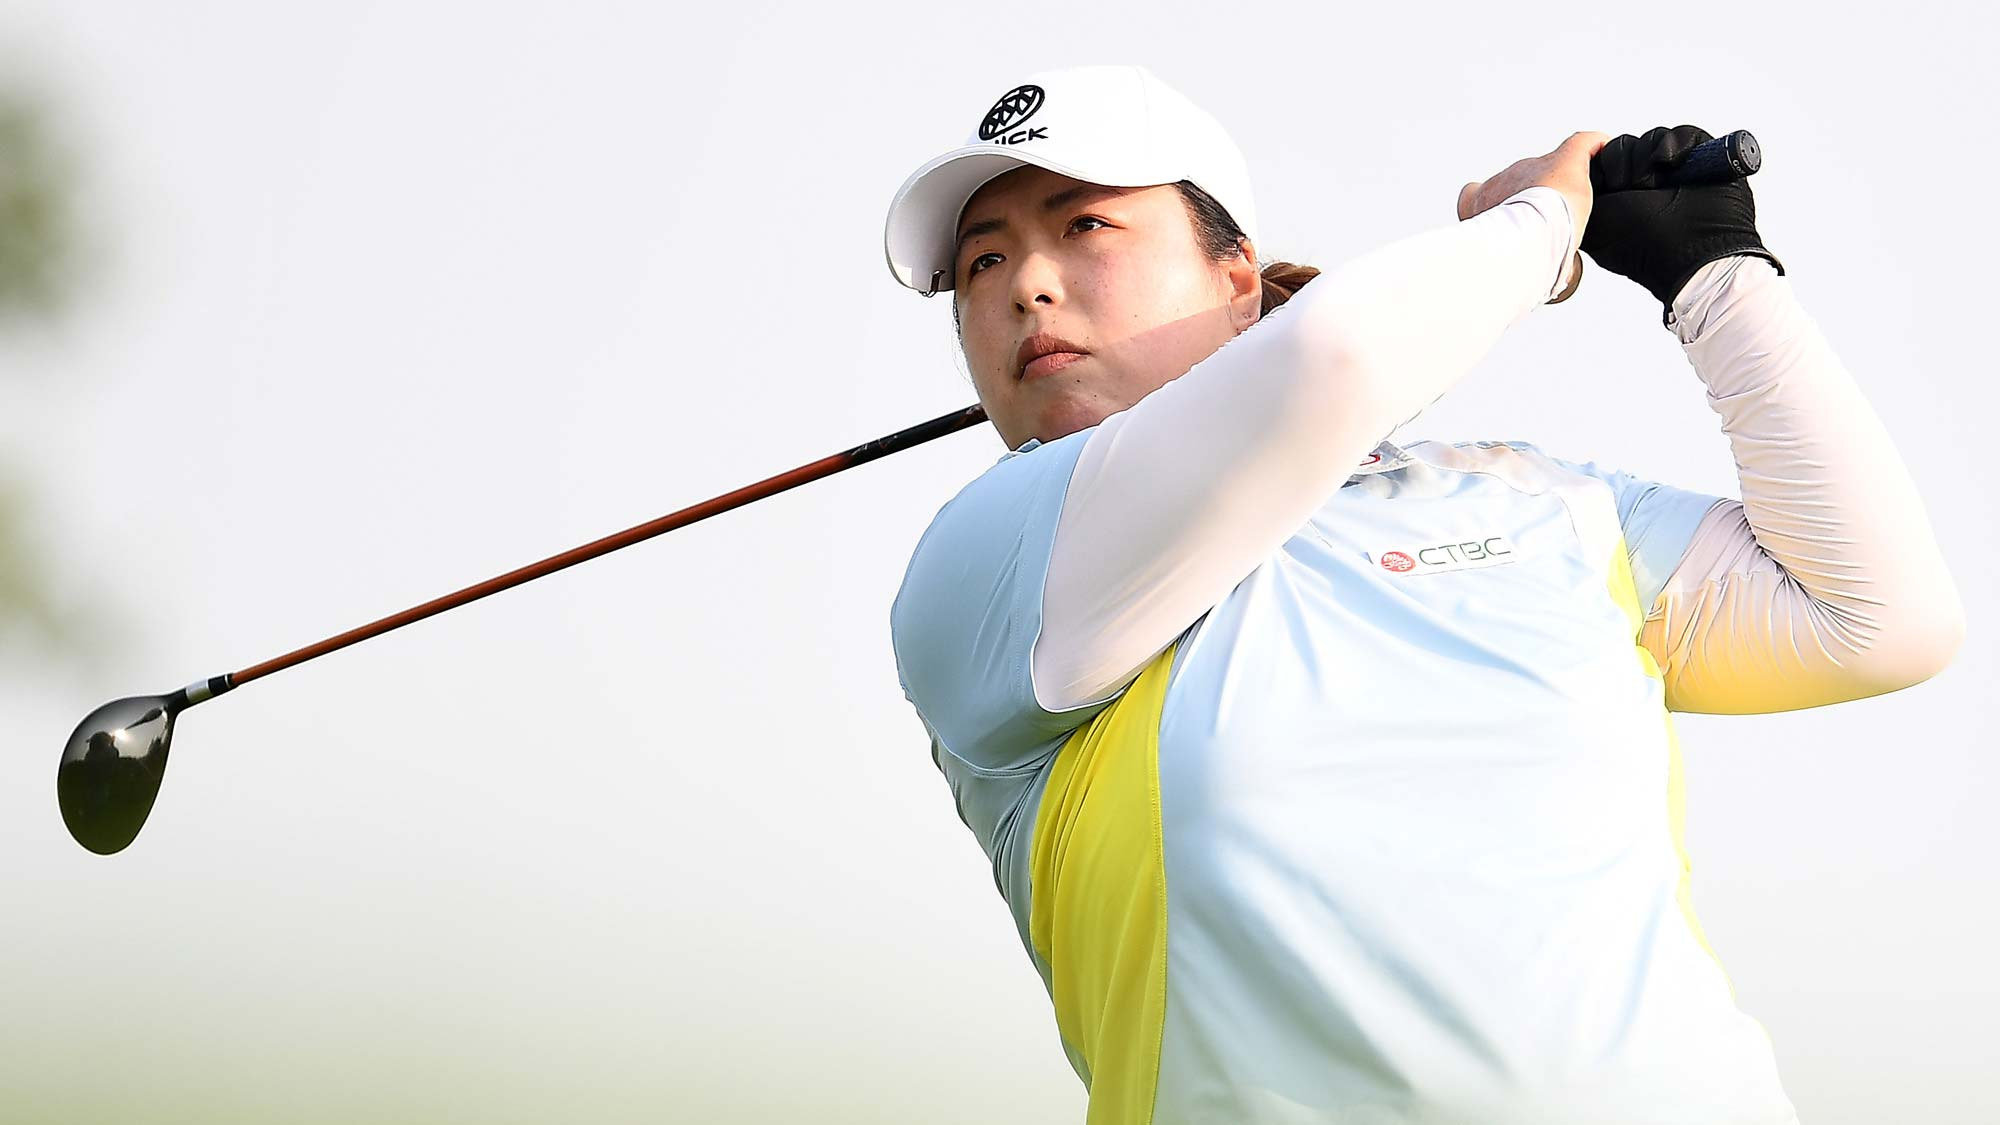 Shanshan Feng of China hits her tee shot on the 16th hole during the final round of the Thornberry Creek LPGA Classic